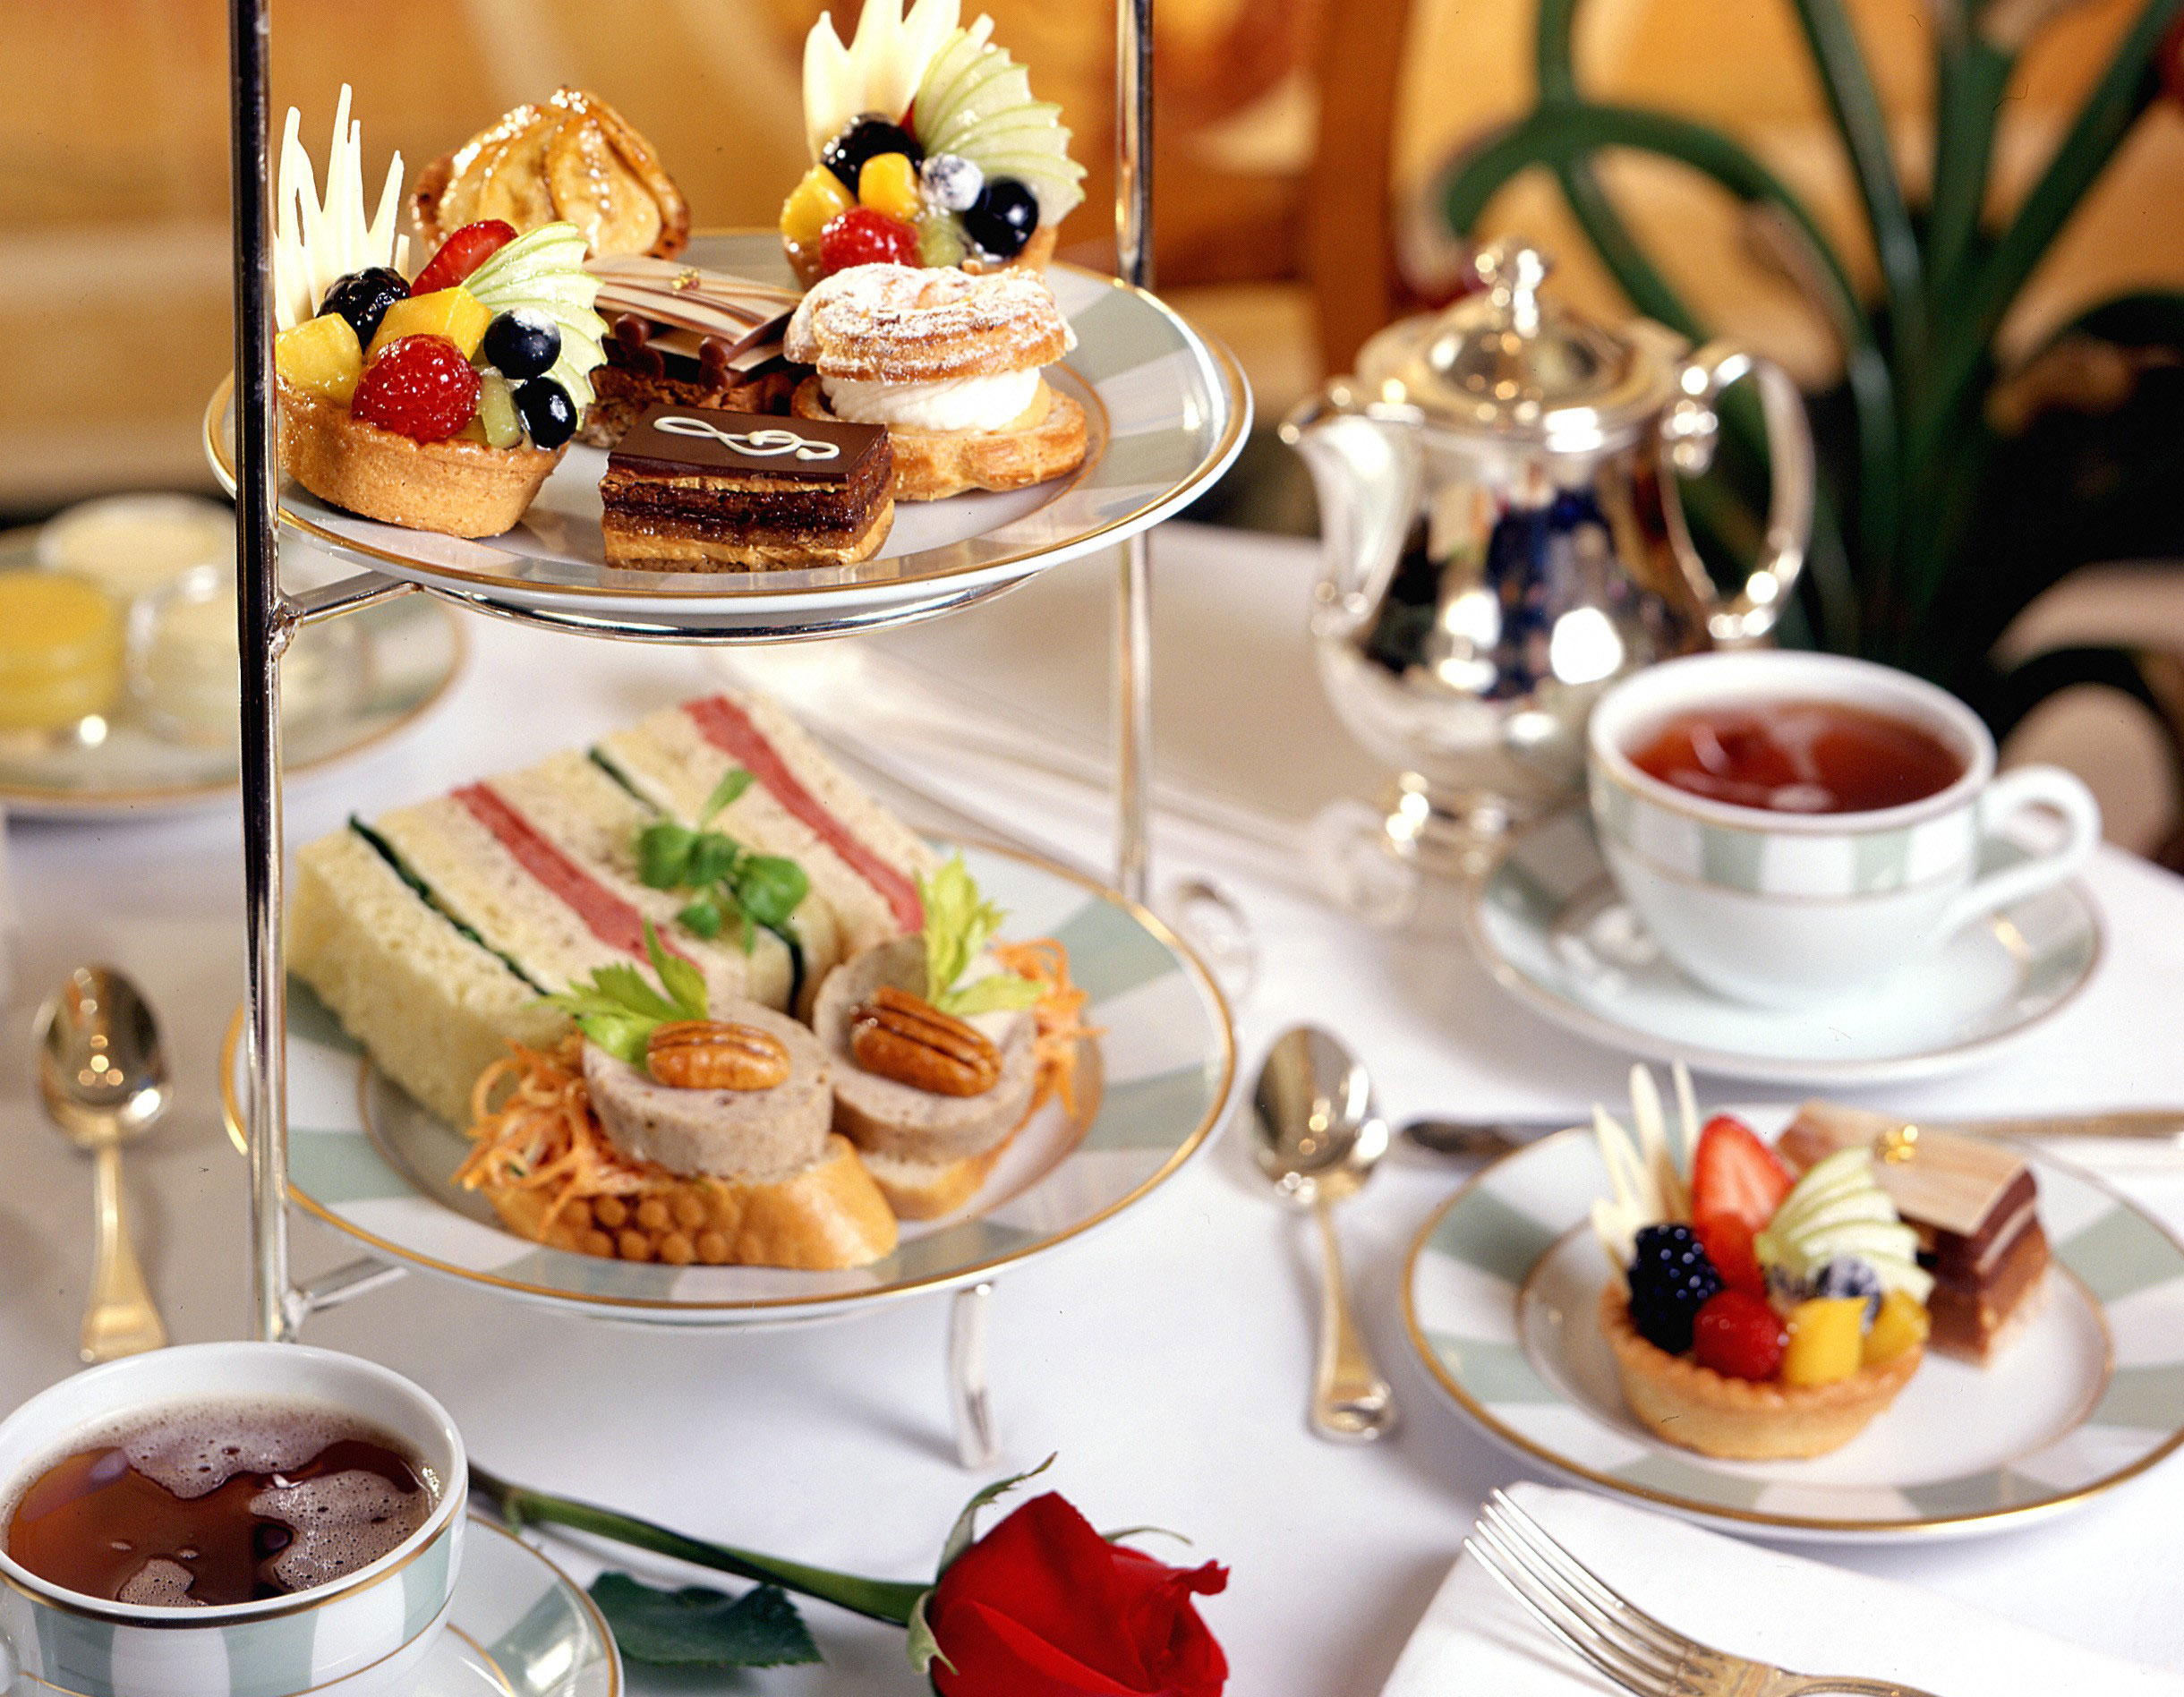 Afternoon tea at Petrossian Bar, photo courtesy of Bellagio.